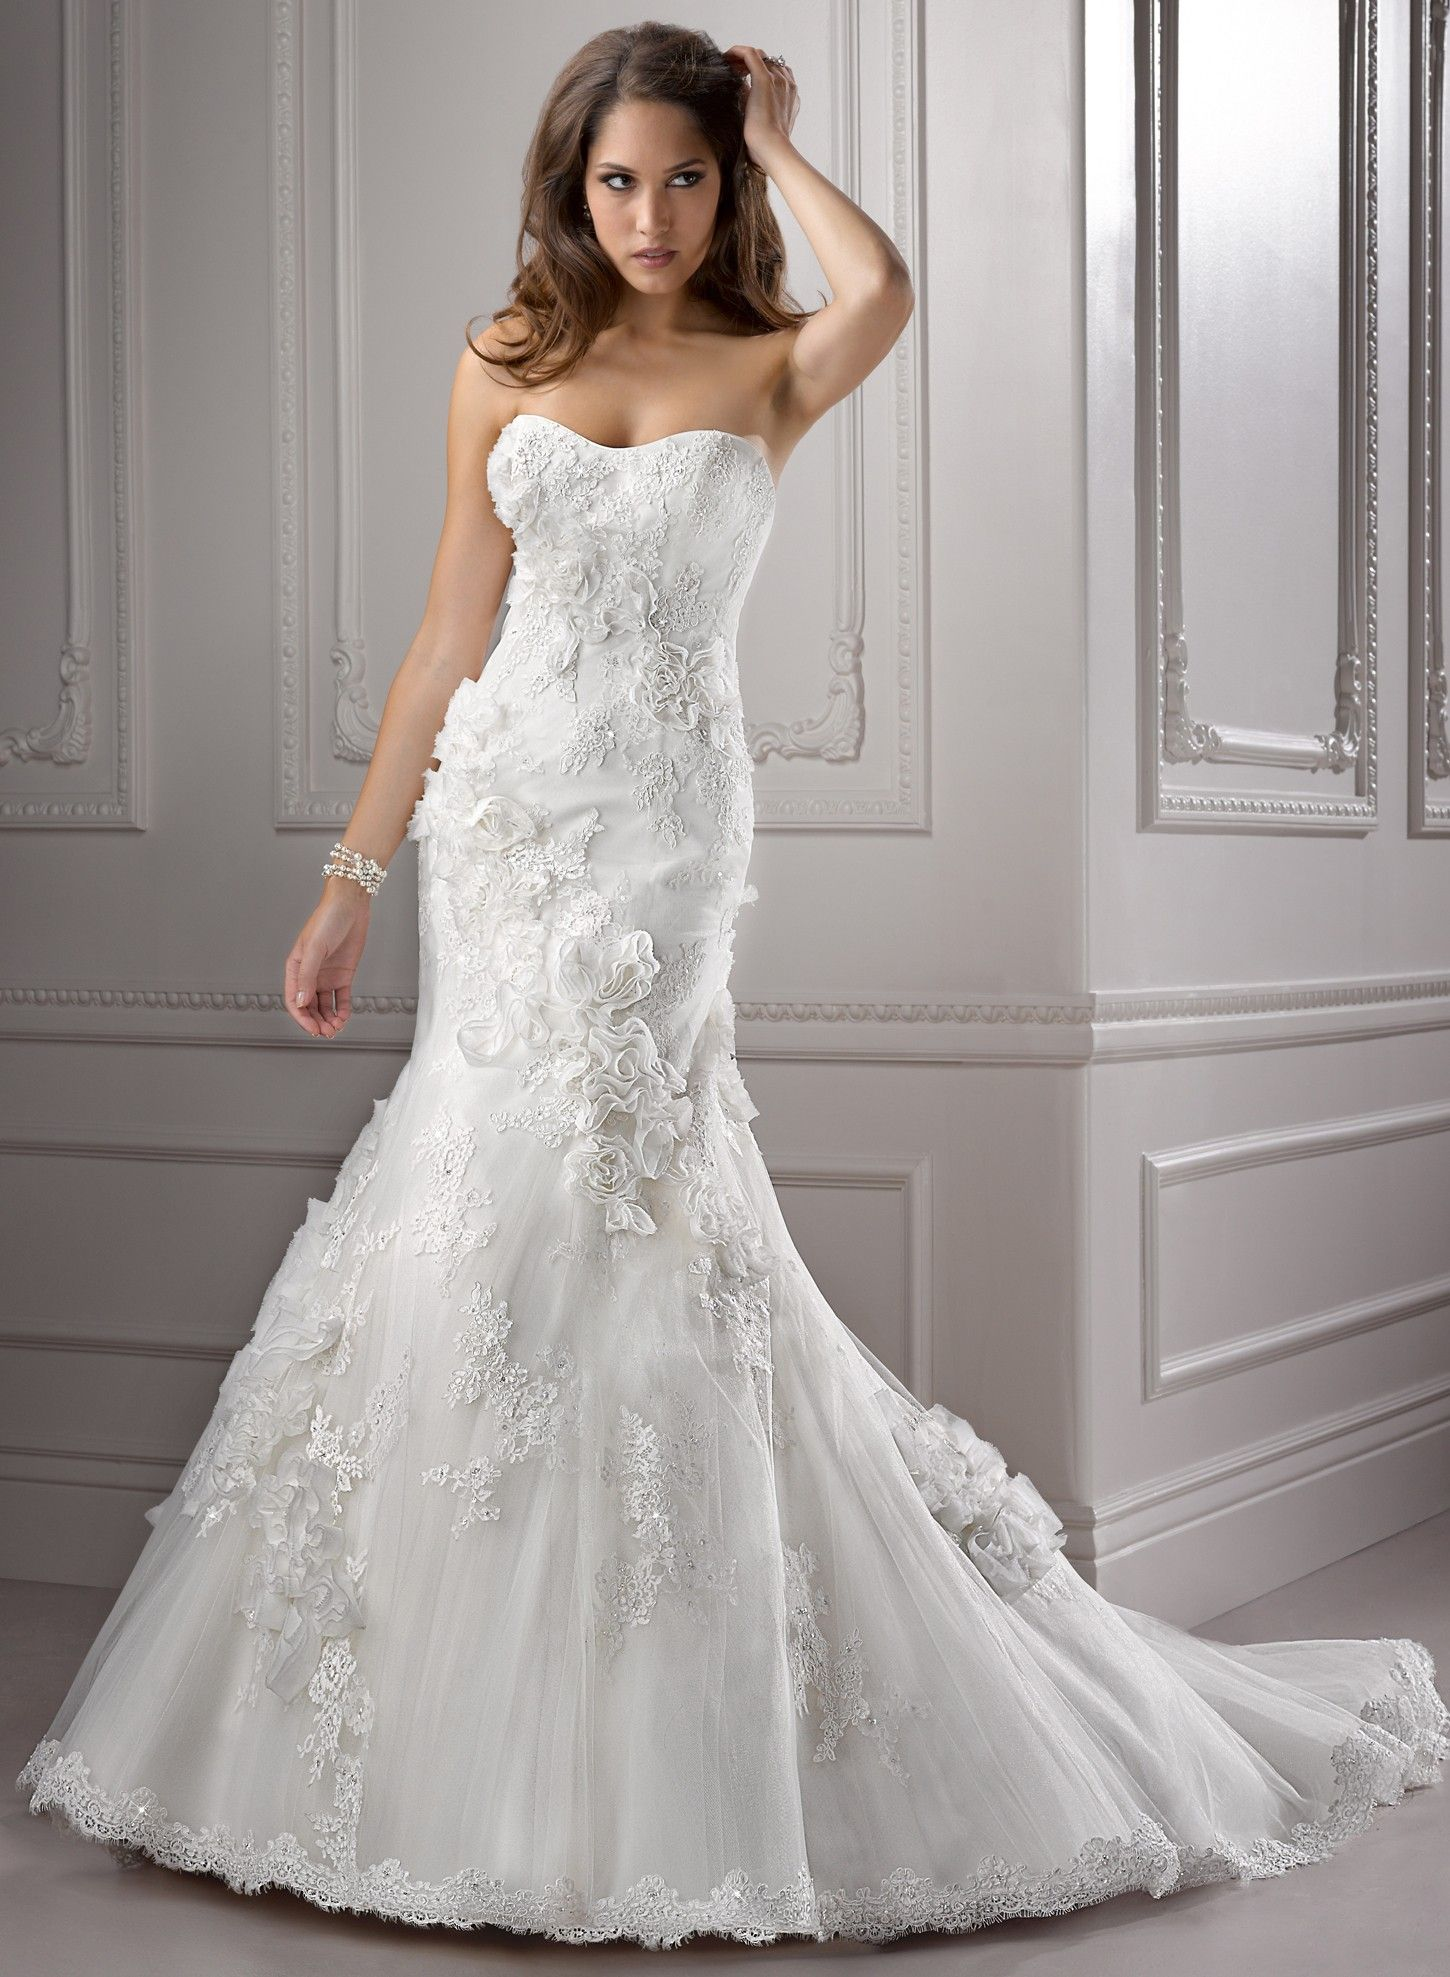 Lace cap sleeve a line wedding dress  Lace and Tulle Capsleeves Neckline Fit and Flare Aline Wedding